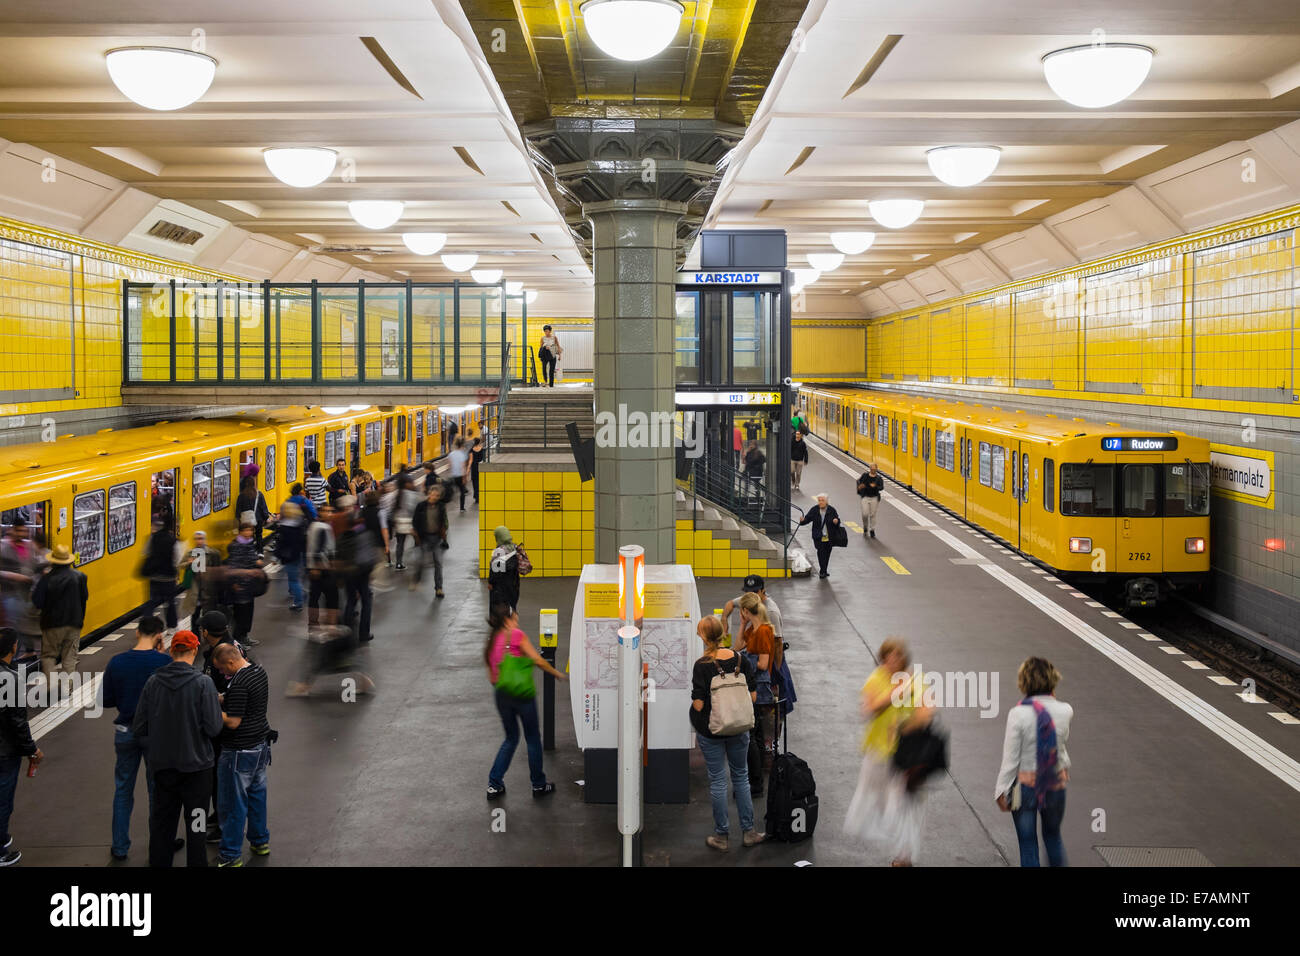 train at platform at Hermannplatz subway station in Berlin Germany - Stock Image